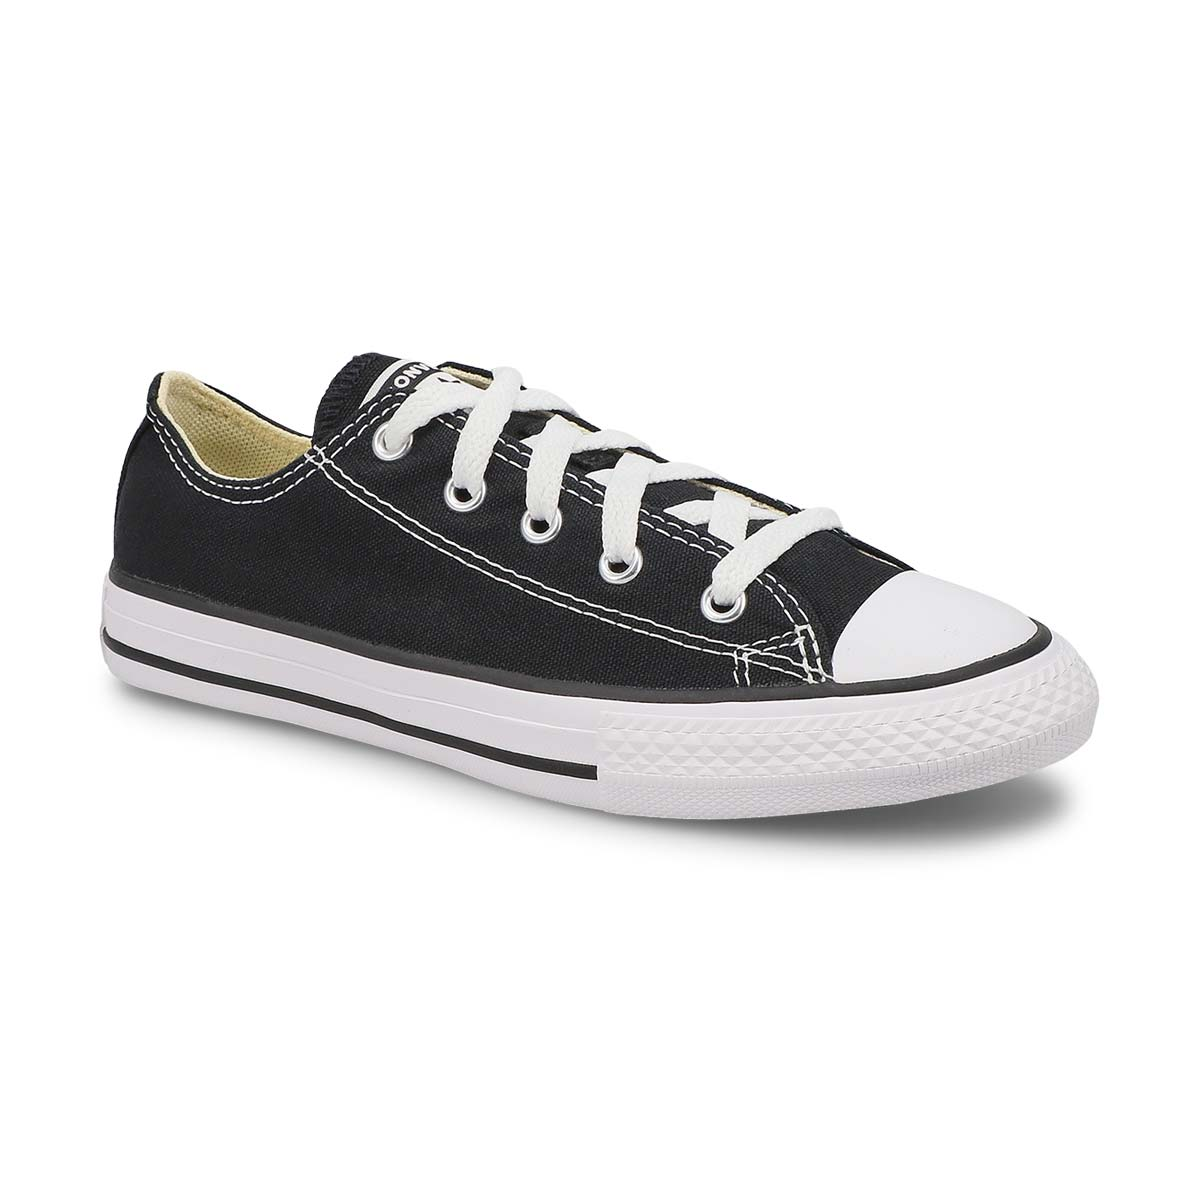 Kids' CHUCK TAYLOR ALL STAR black sneakers